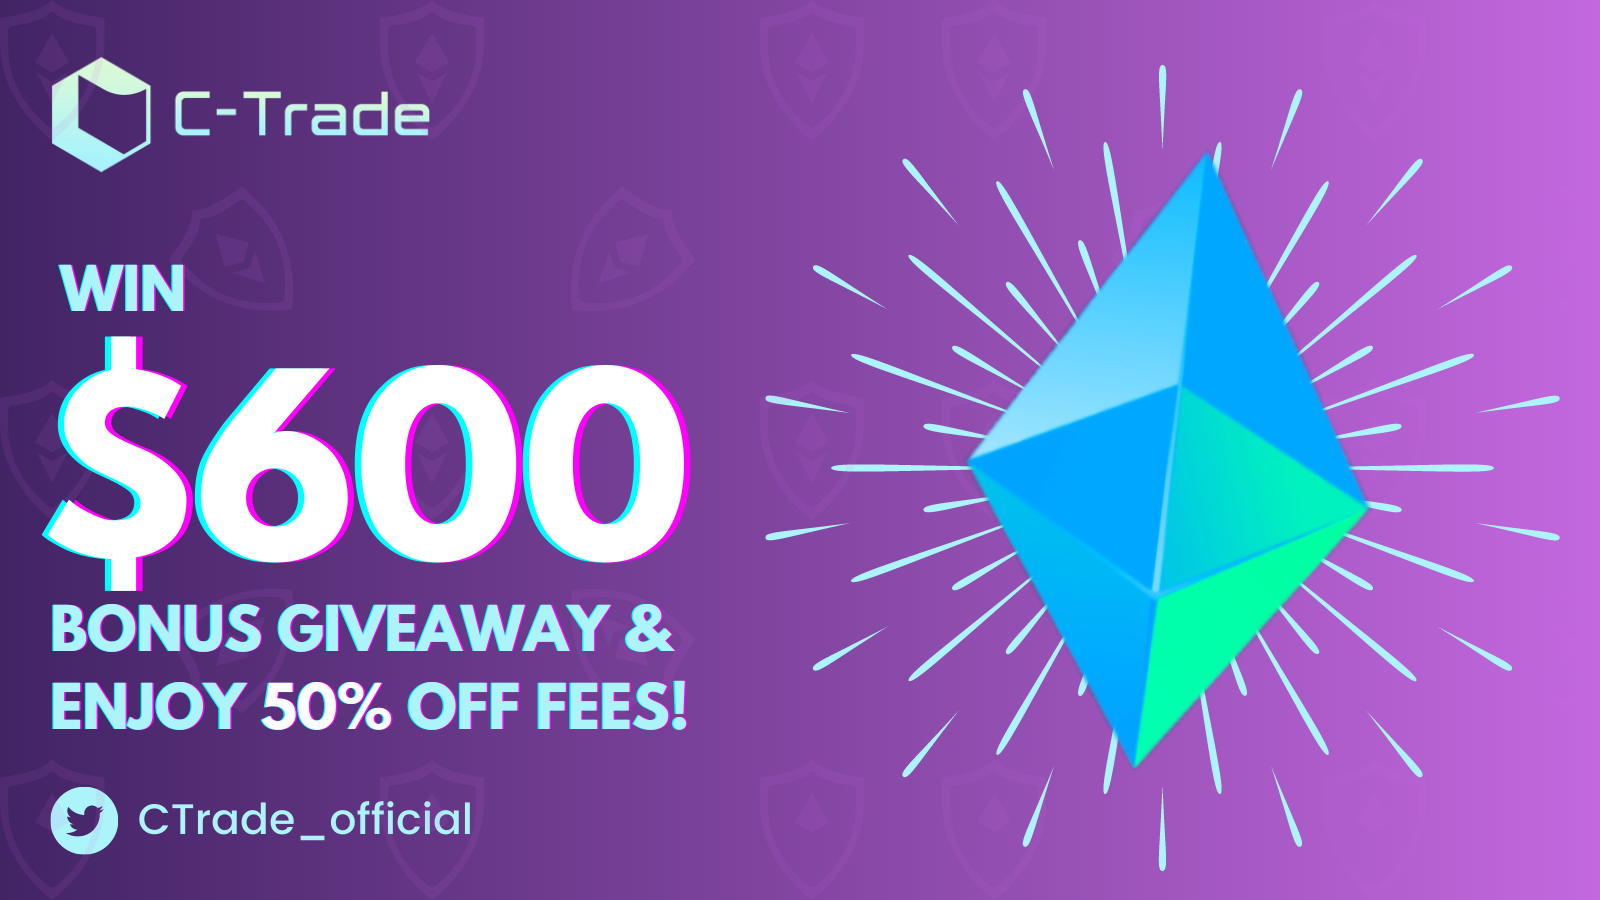 Win $600 Bonus & 50% Off Fees to Celebrate ETHUSD Perpetual Trading Pair Launch!